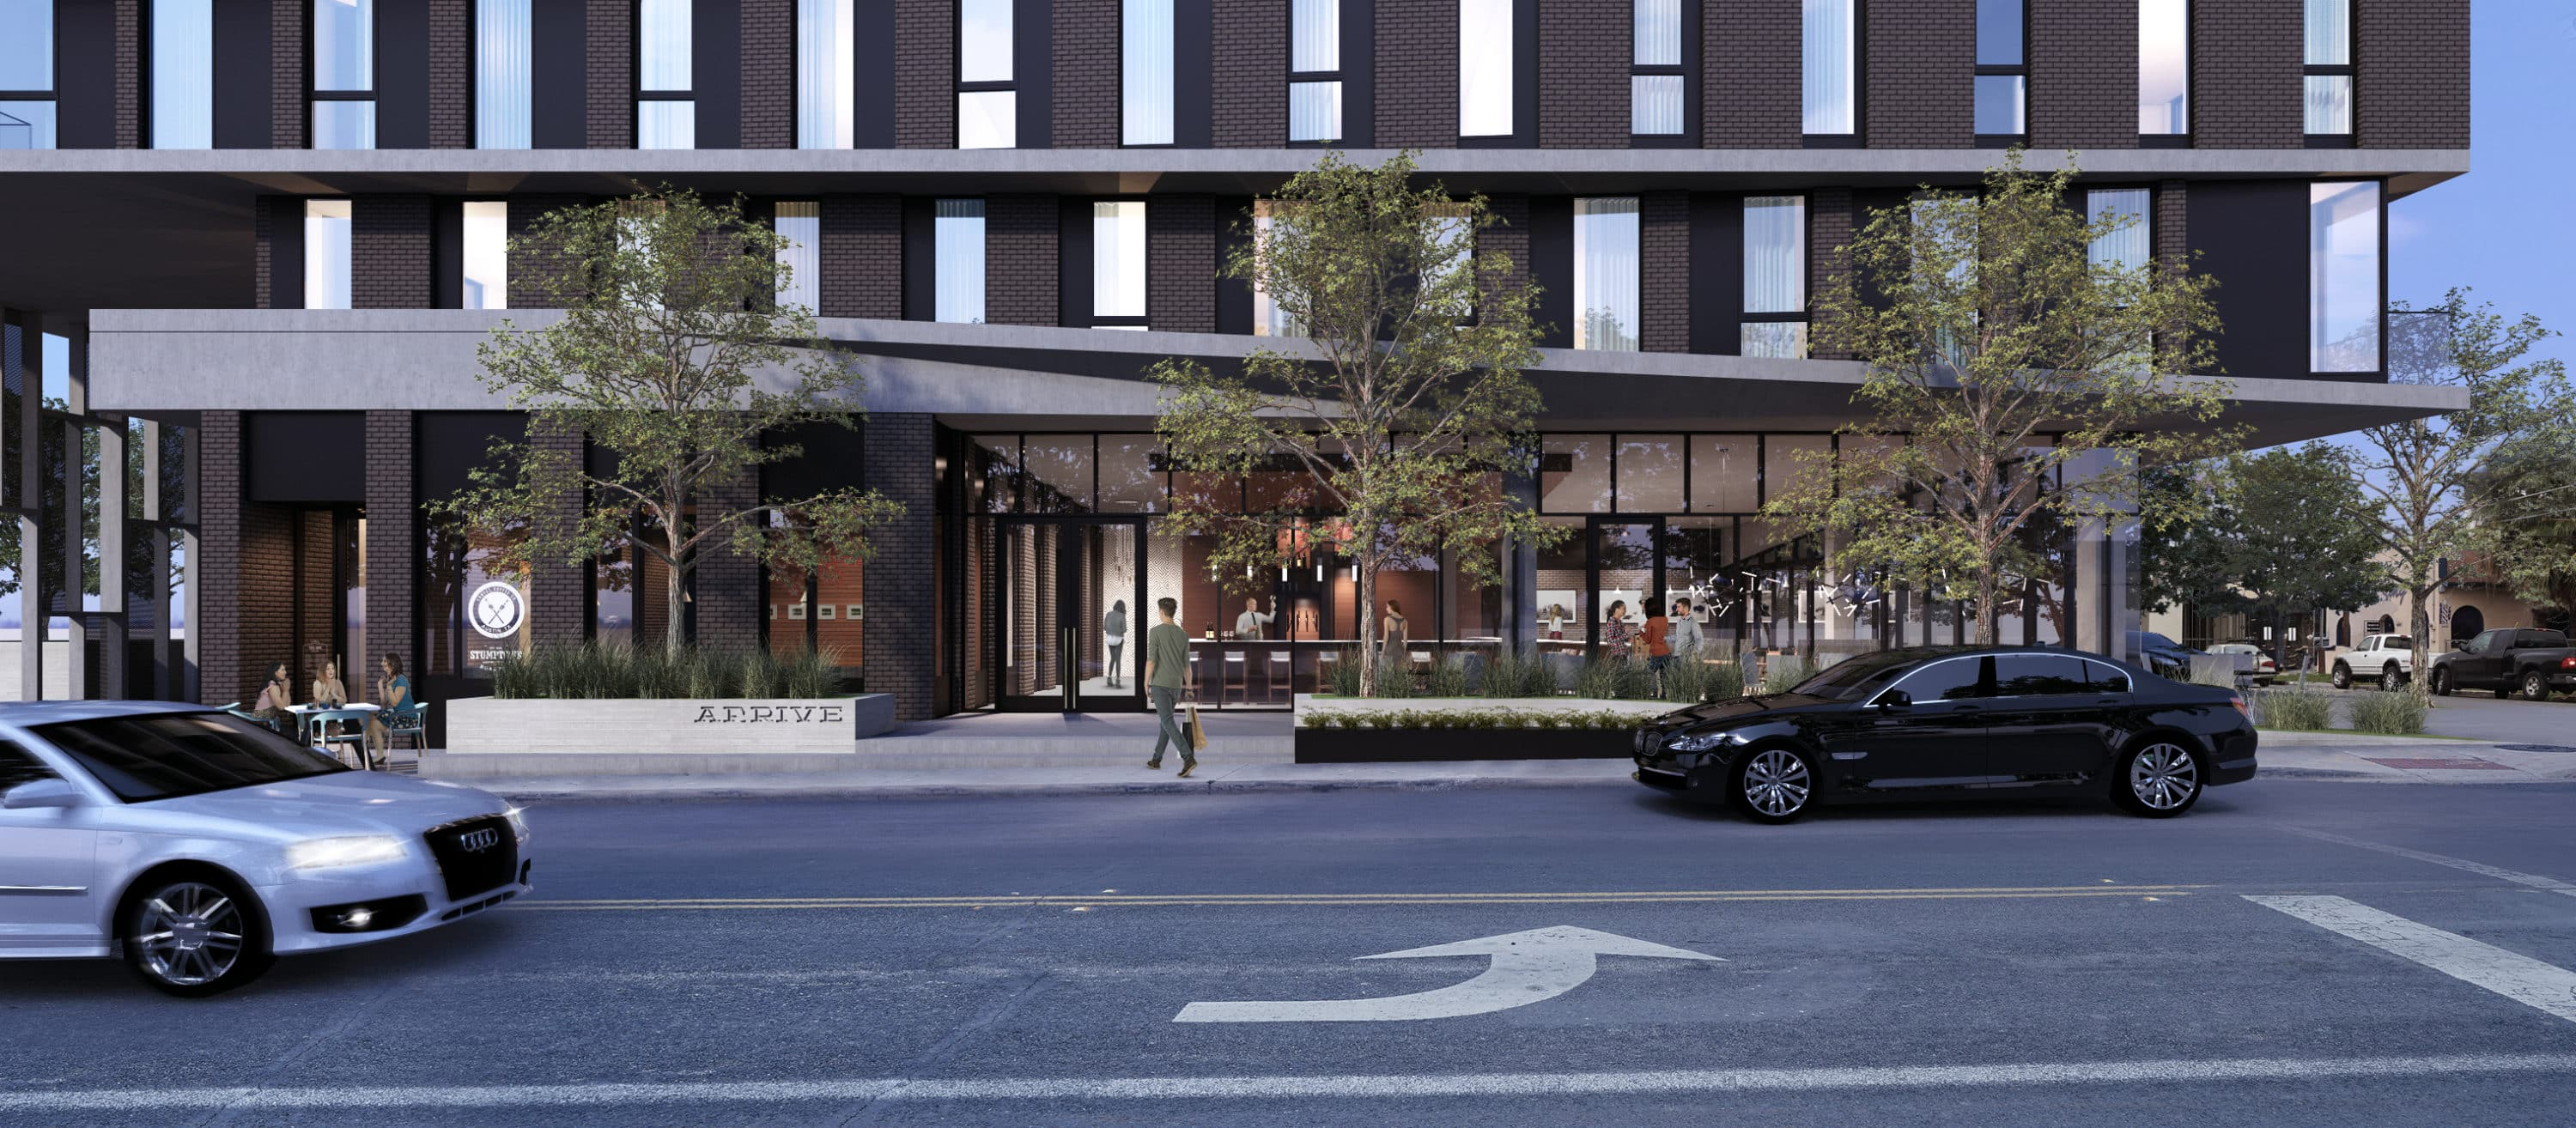 Arrive Hotel by Frost Visualizations